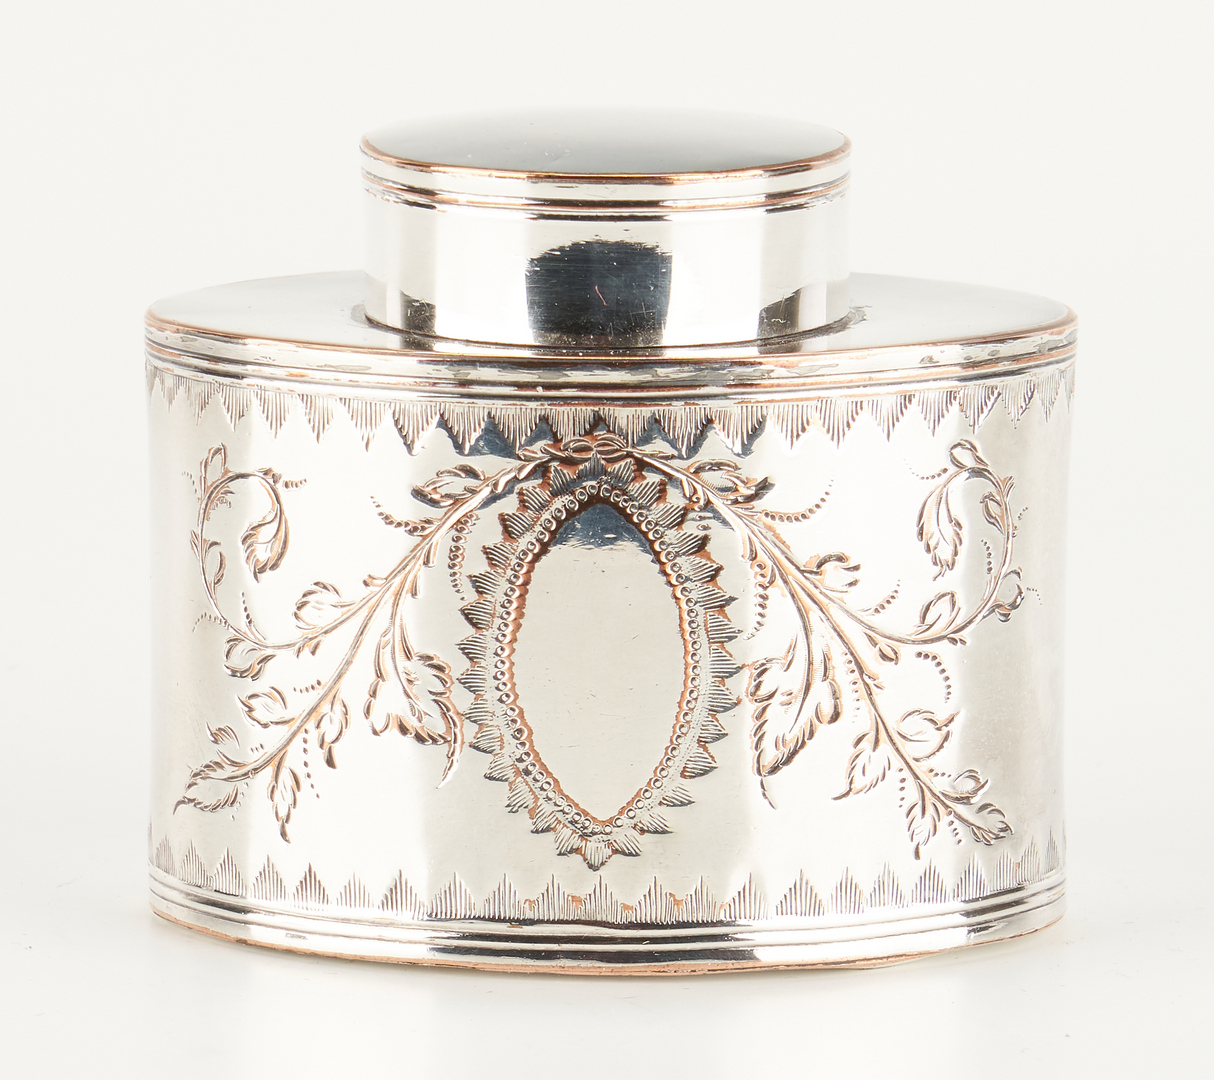 Lot 481: 2 Tea Caddies: Anglo Indian and Old Sheffield